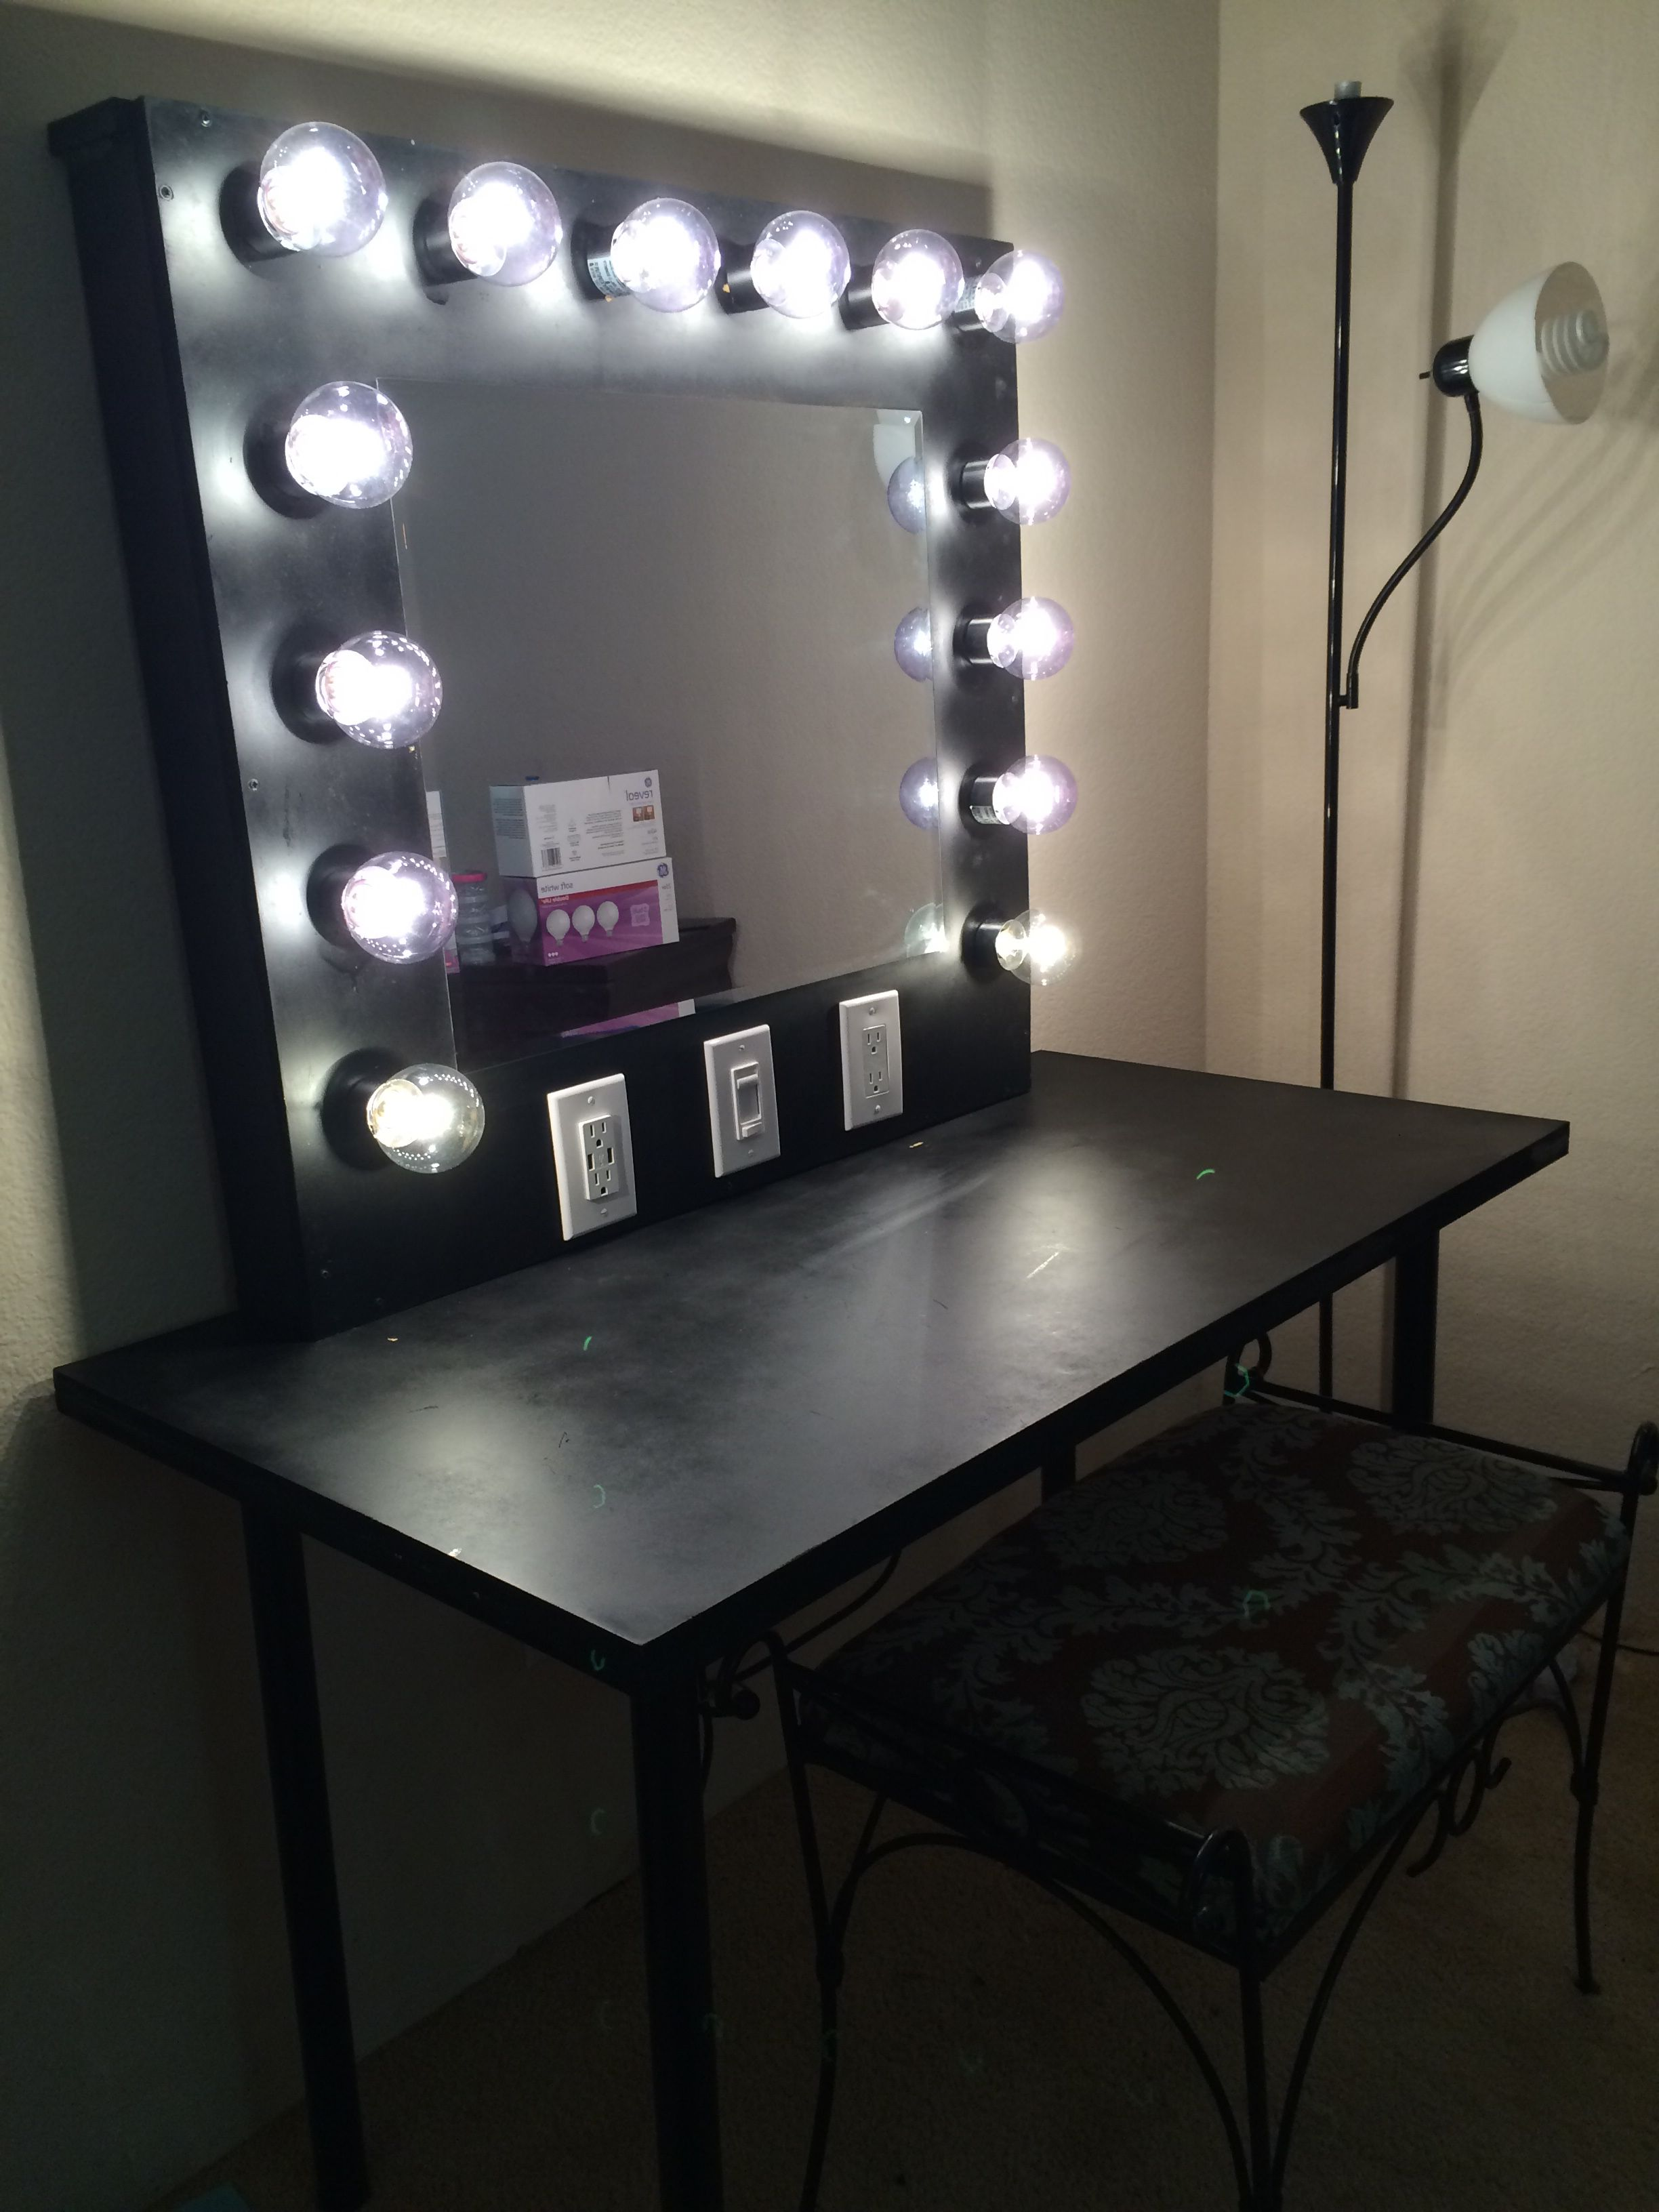 Diy Vanity Mirror With Lights Diy Vanity Mirror Diy Vanity